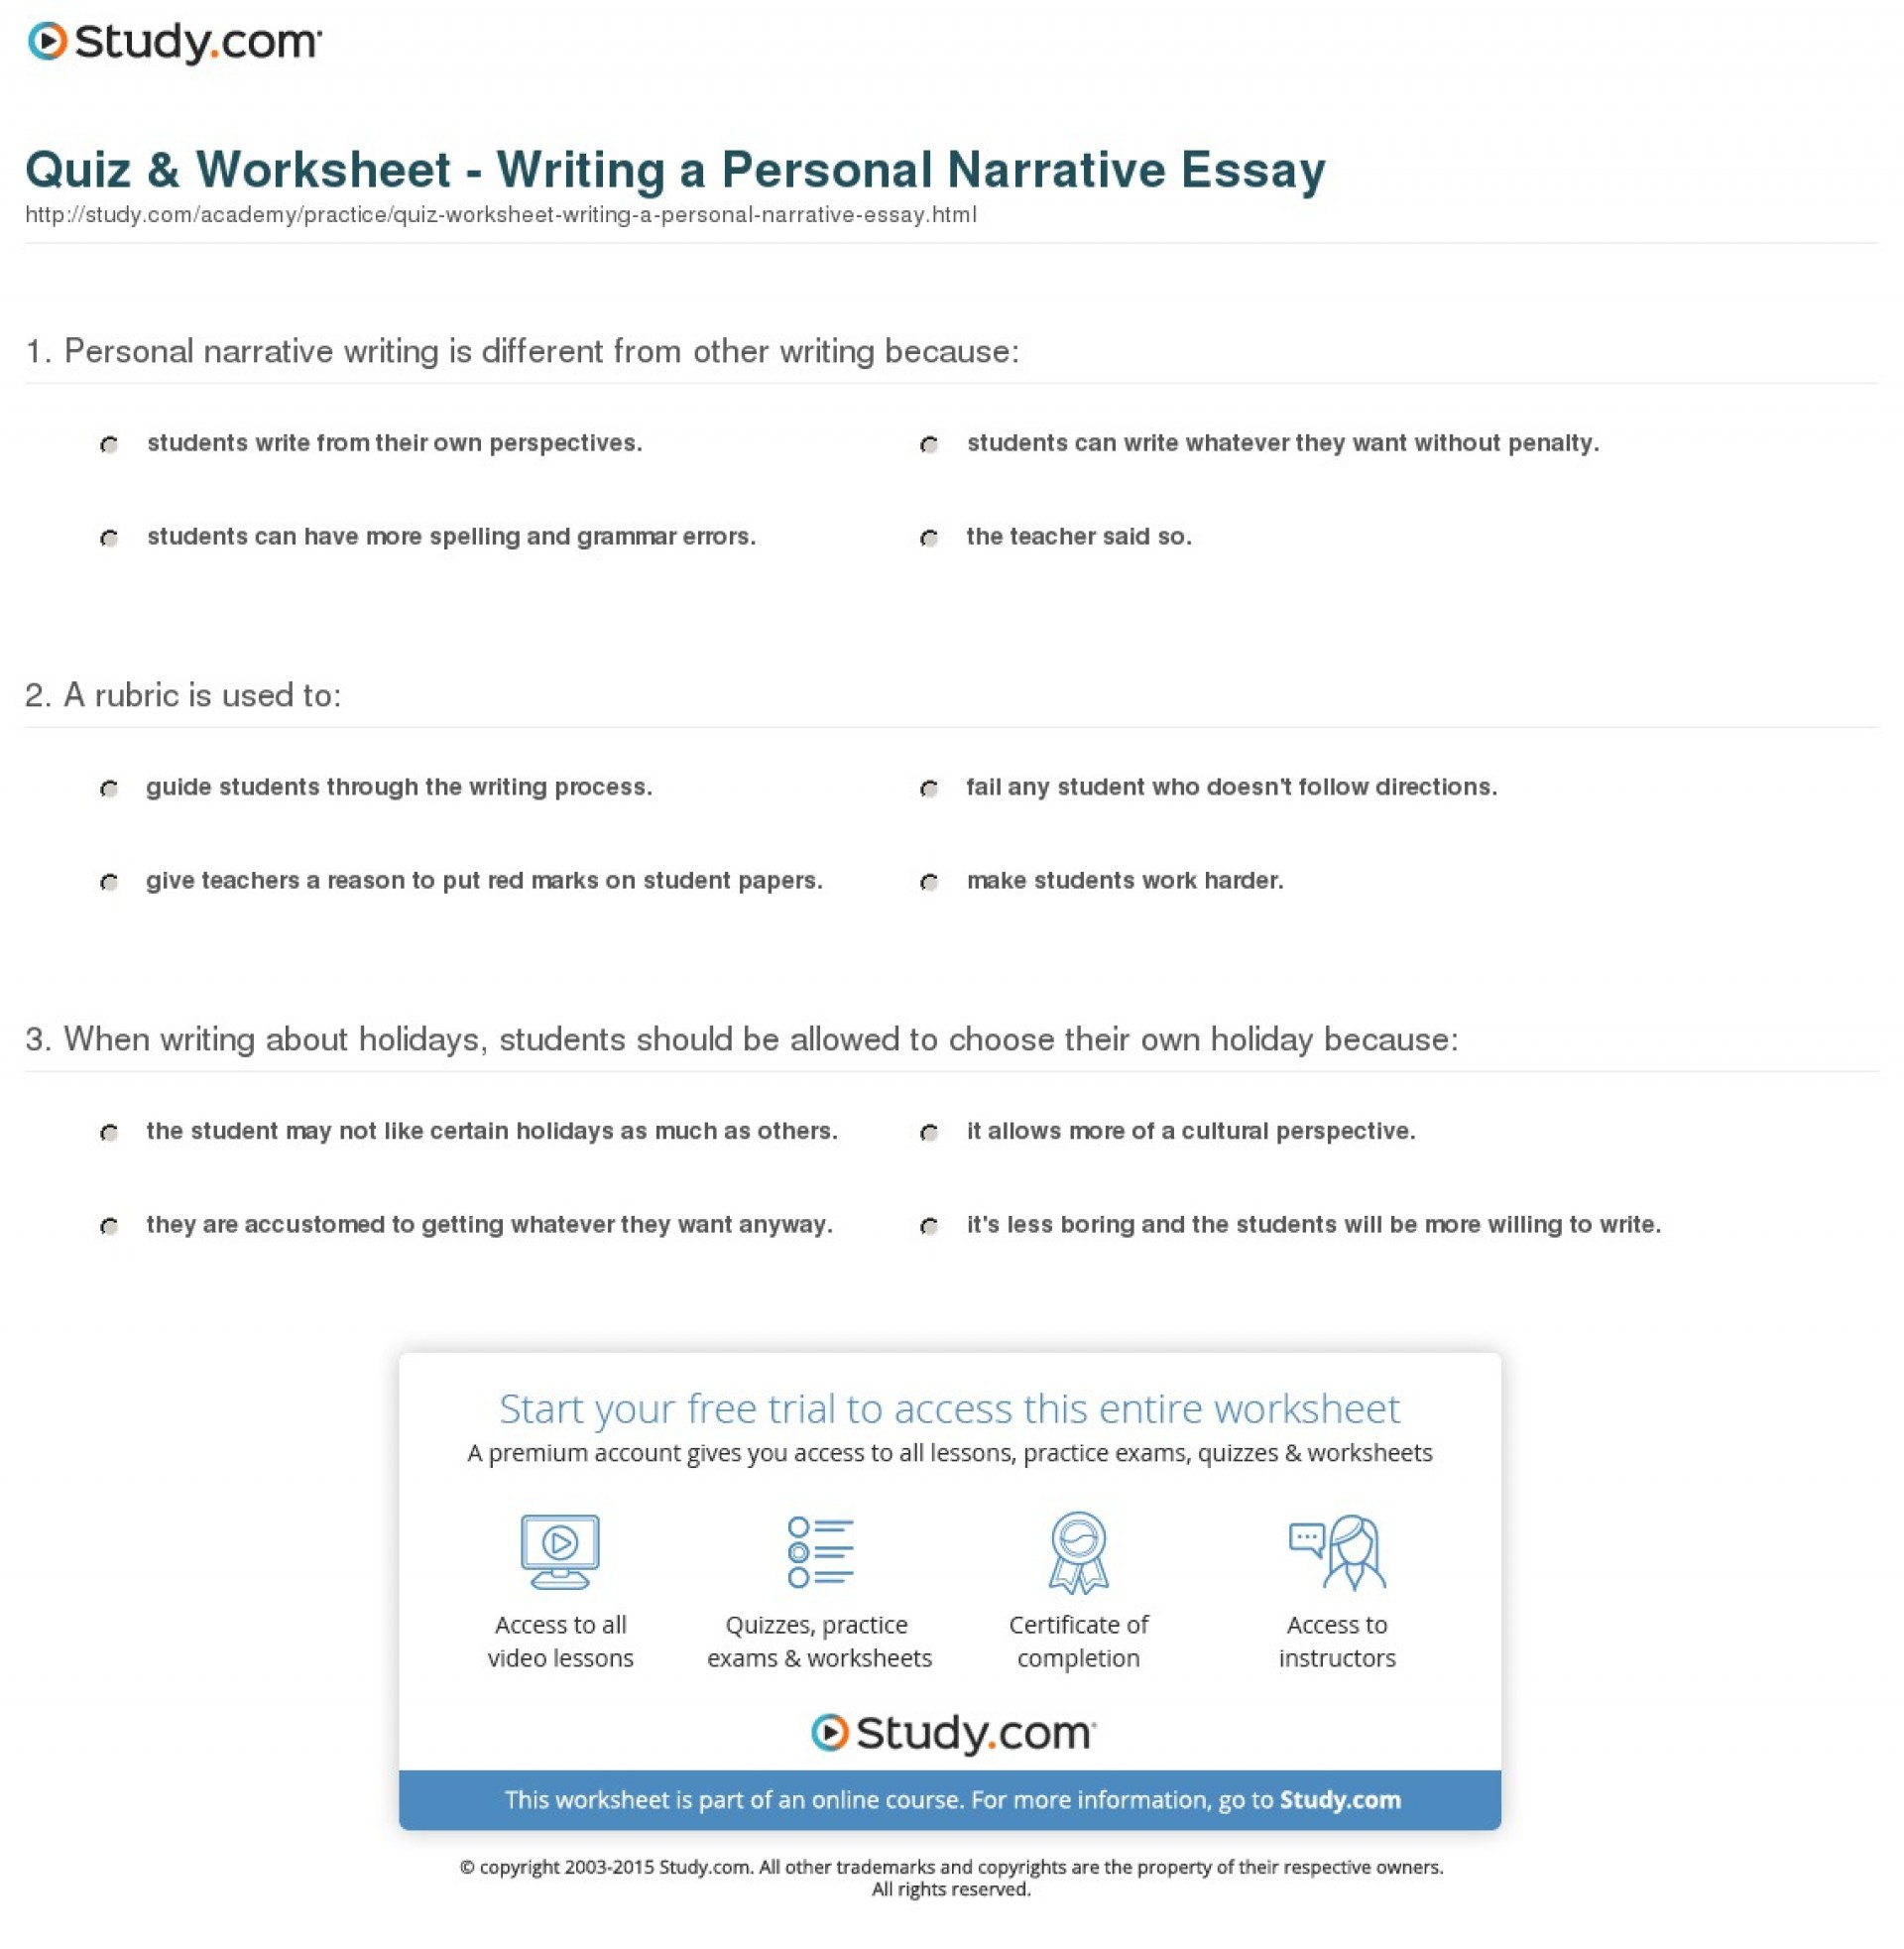 015 Personal Narrative Essay Example Quiz Worksheet Writing Stirring Examples For 2nd Graders Topics Grade 6 Middle School Pdf 1920